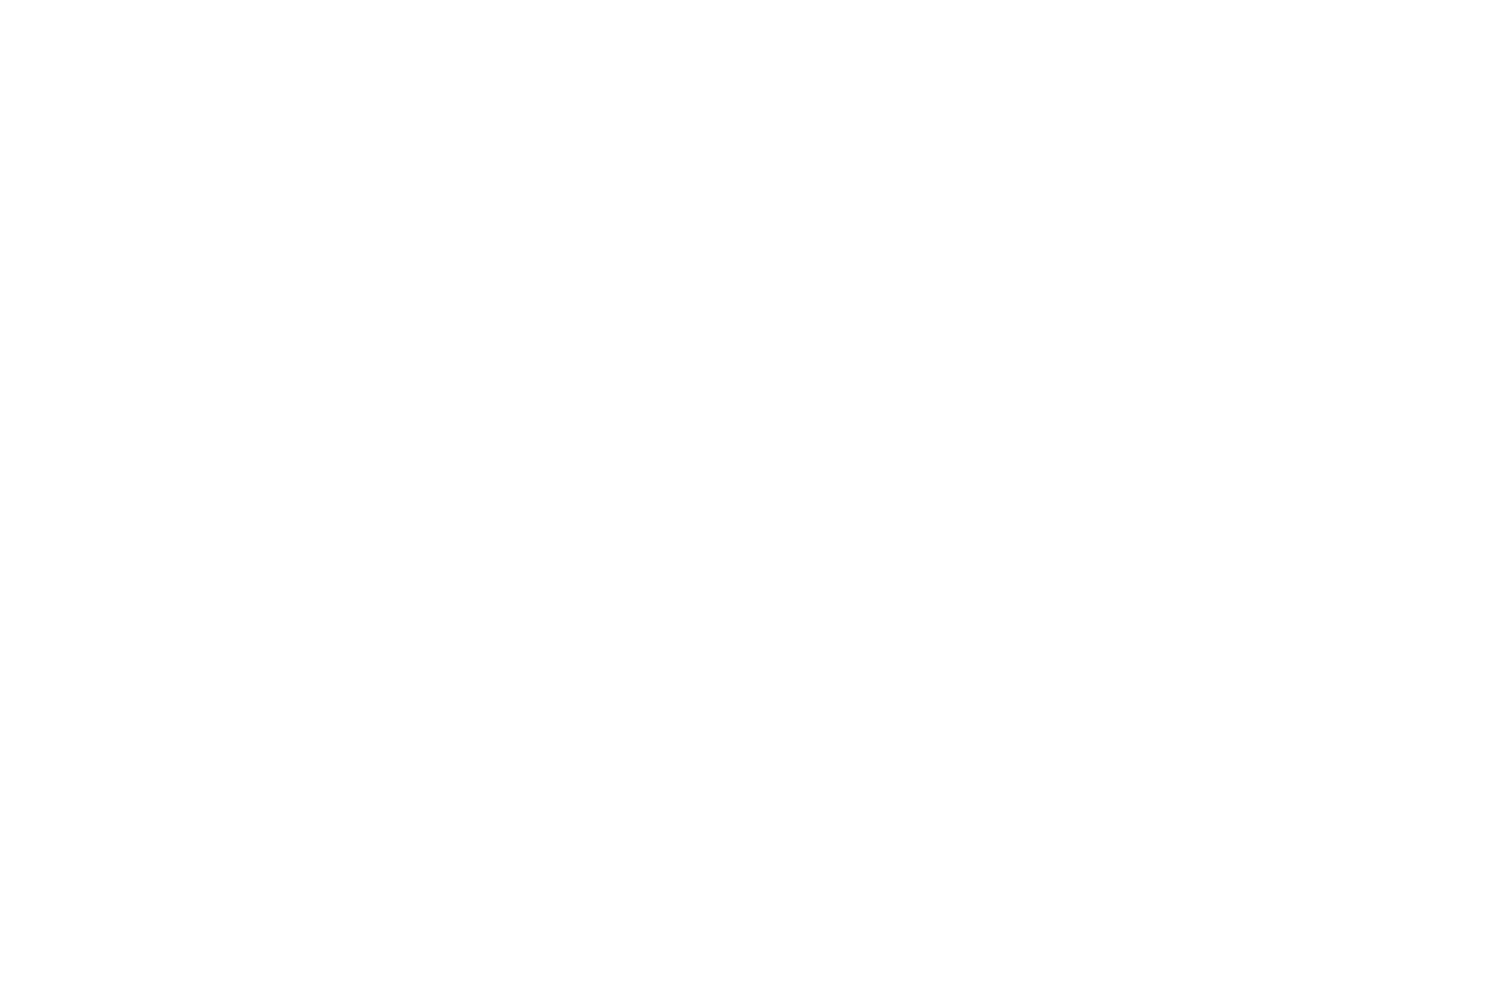 Aaron Gort Photography